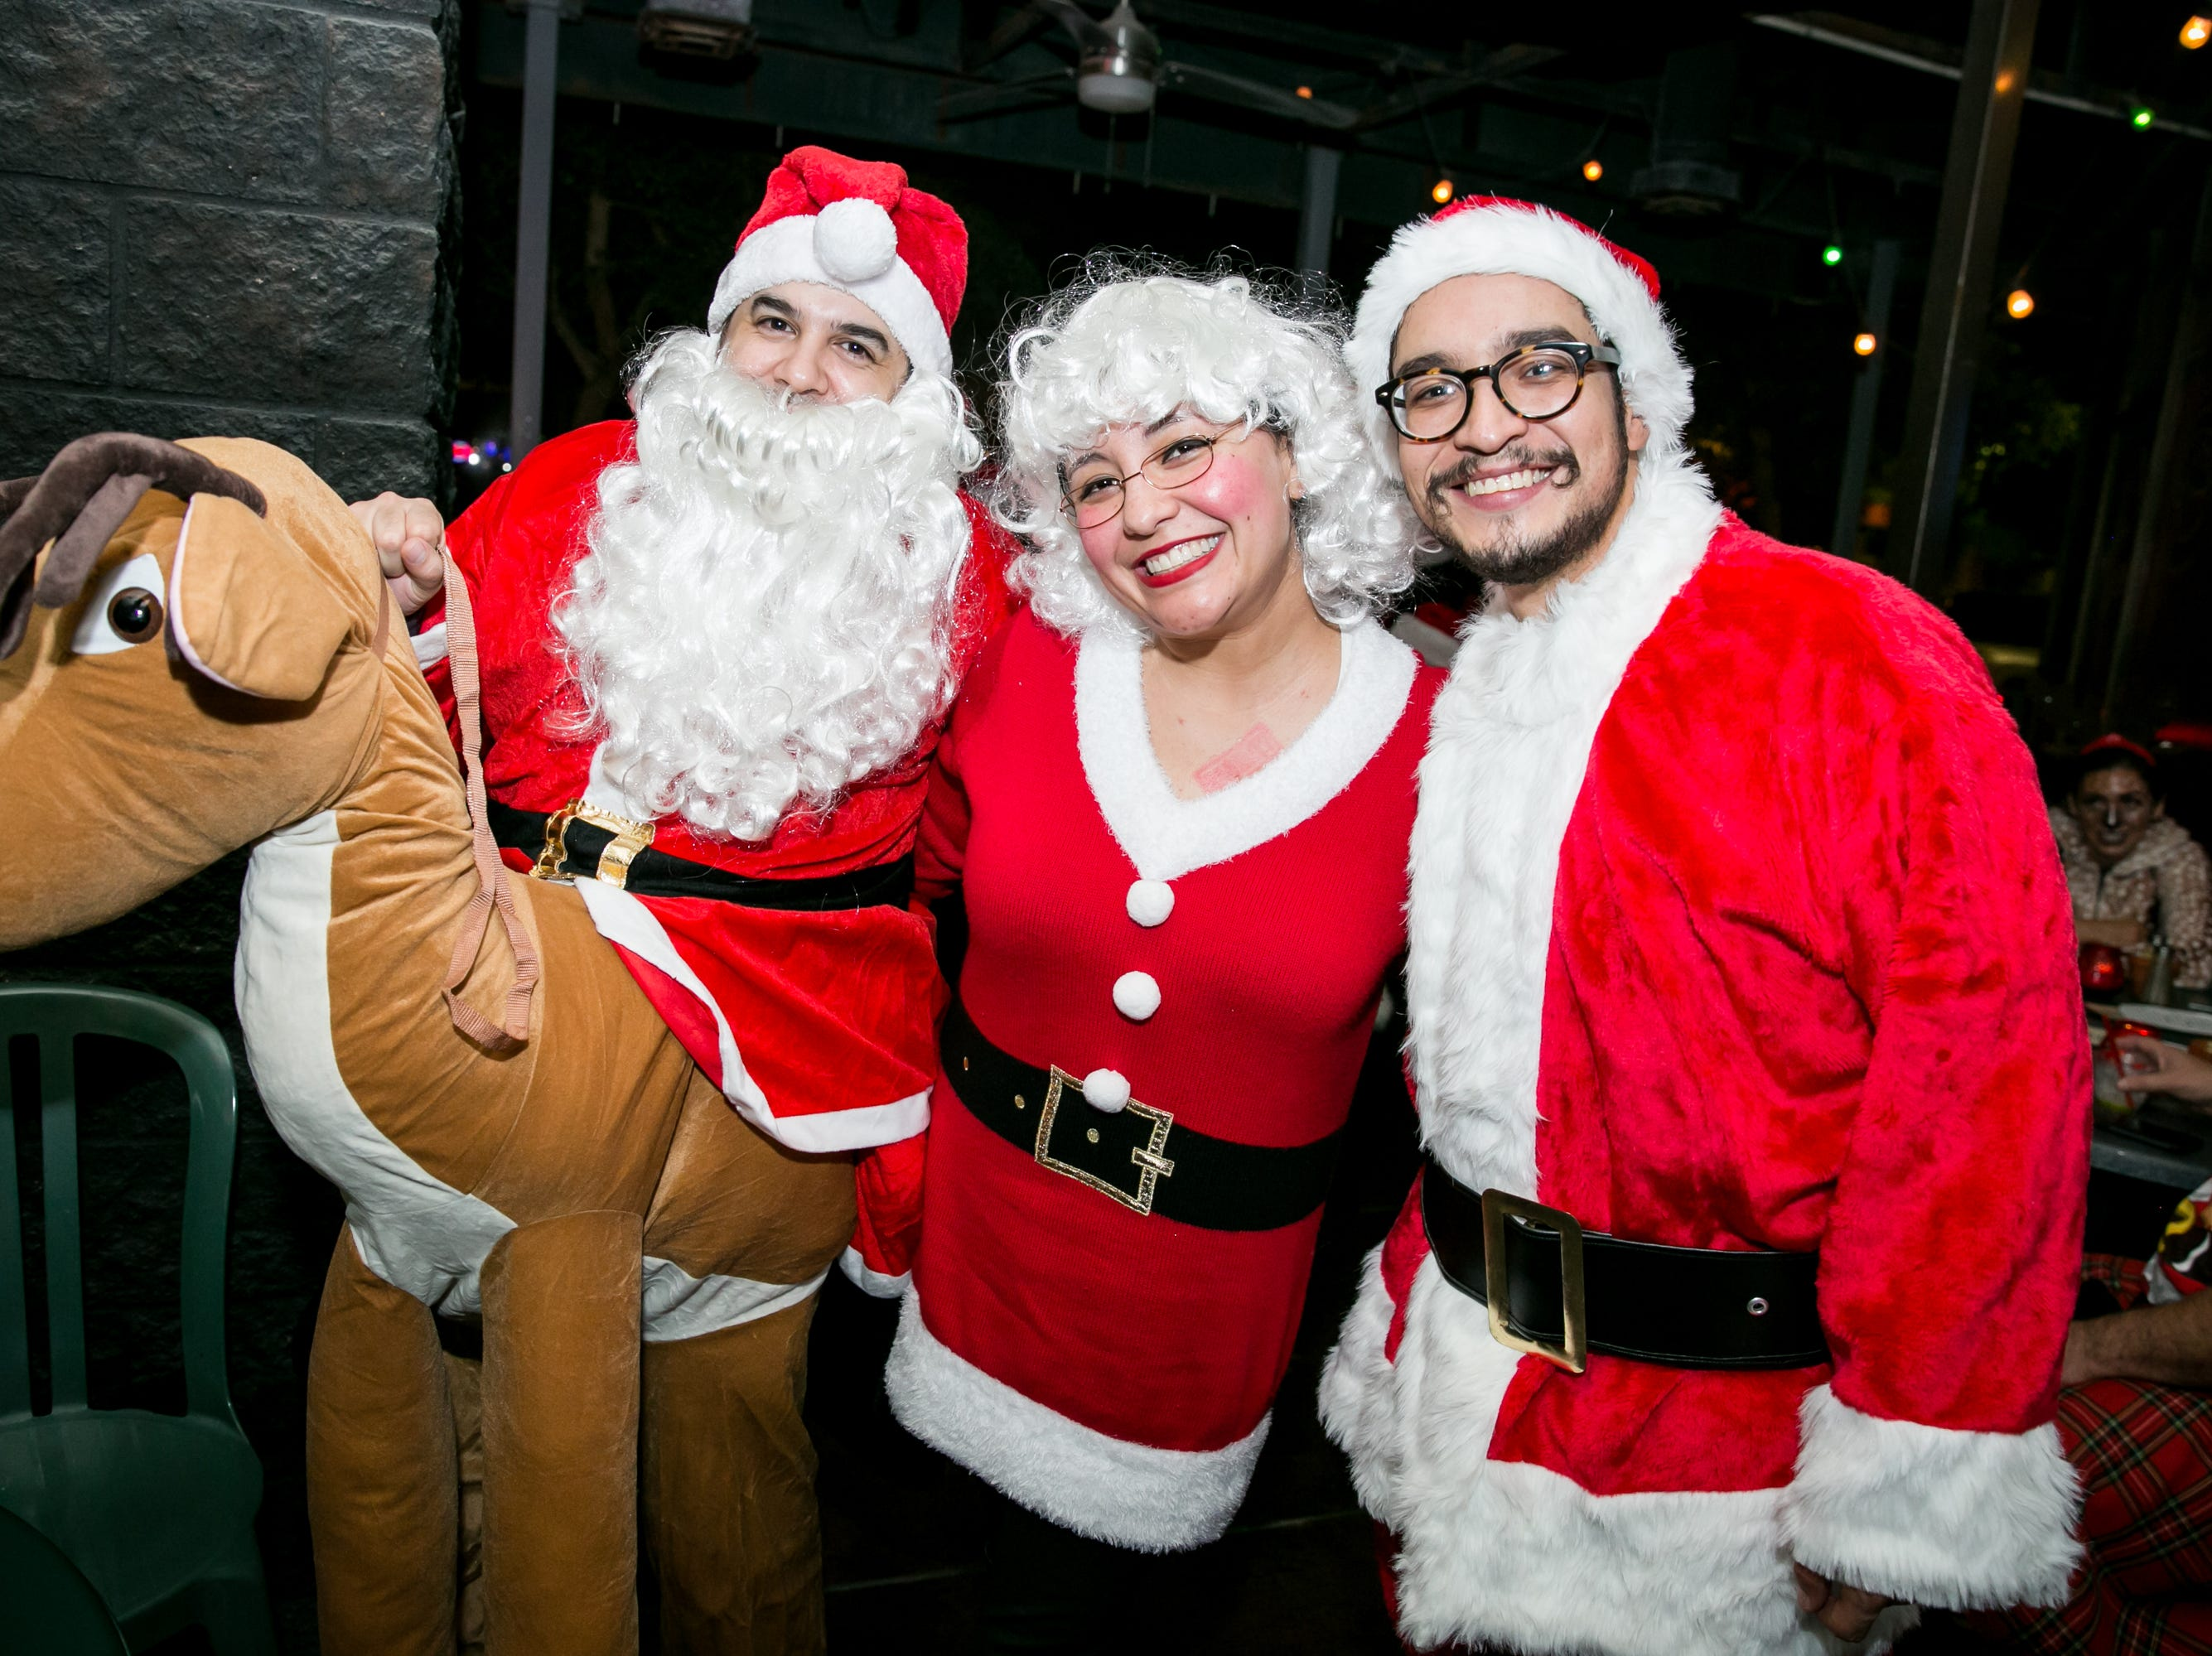 Christmas wouldn't be complete without Rudolph at Steve's Greenhouse Grill during Santarchy on Saturday, December 8, 2018.